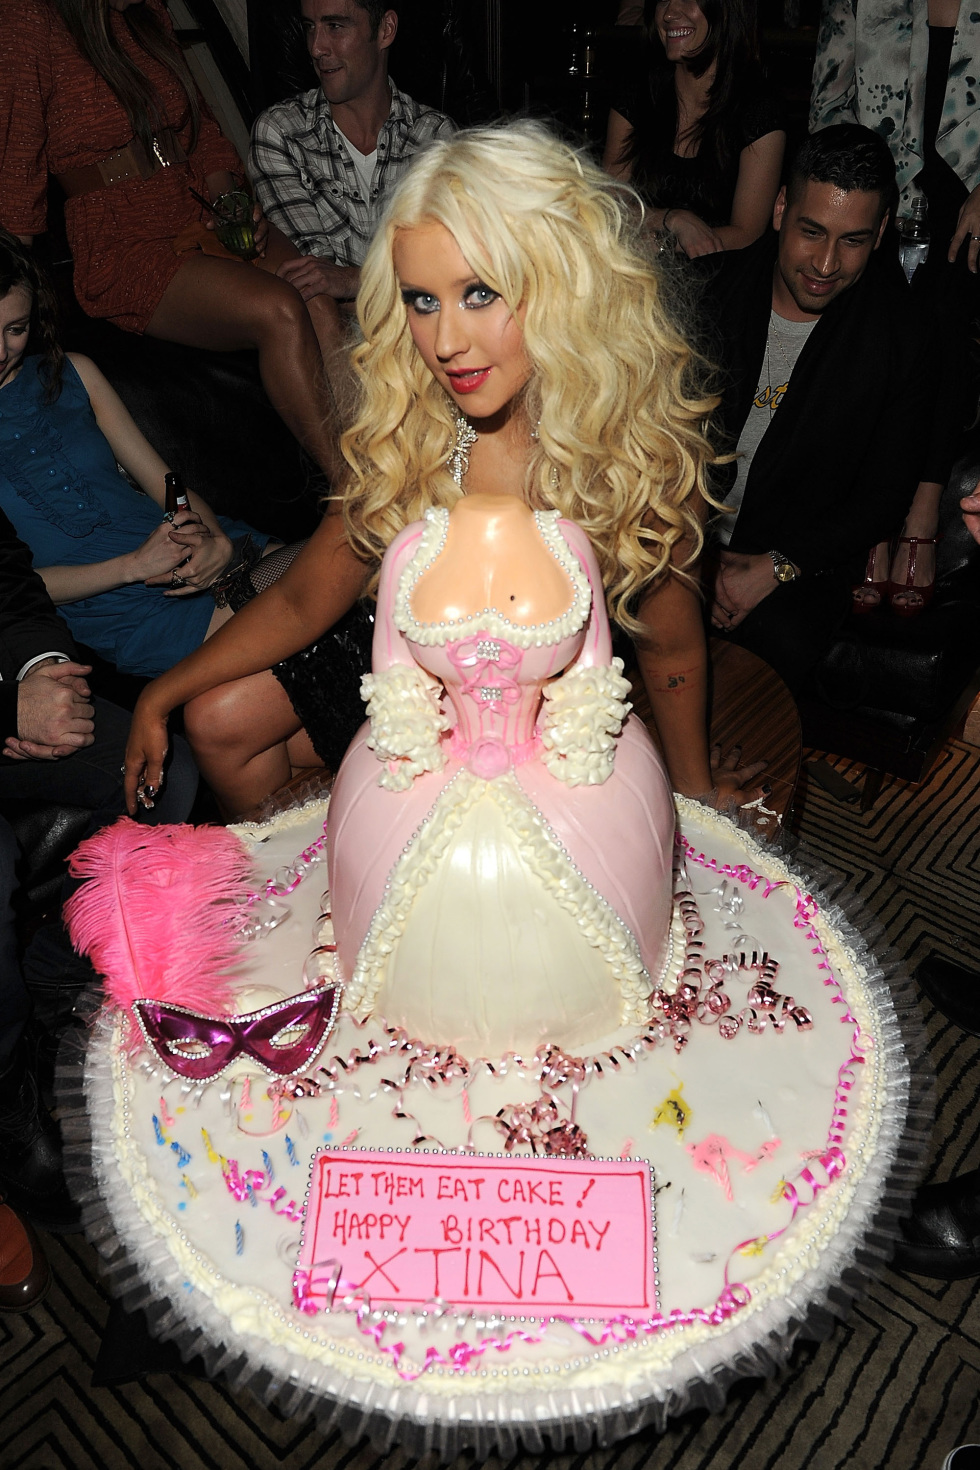 Christina Aguilera celebrates her birthday with a cake by Hansens Cakes